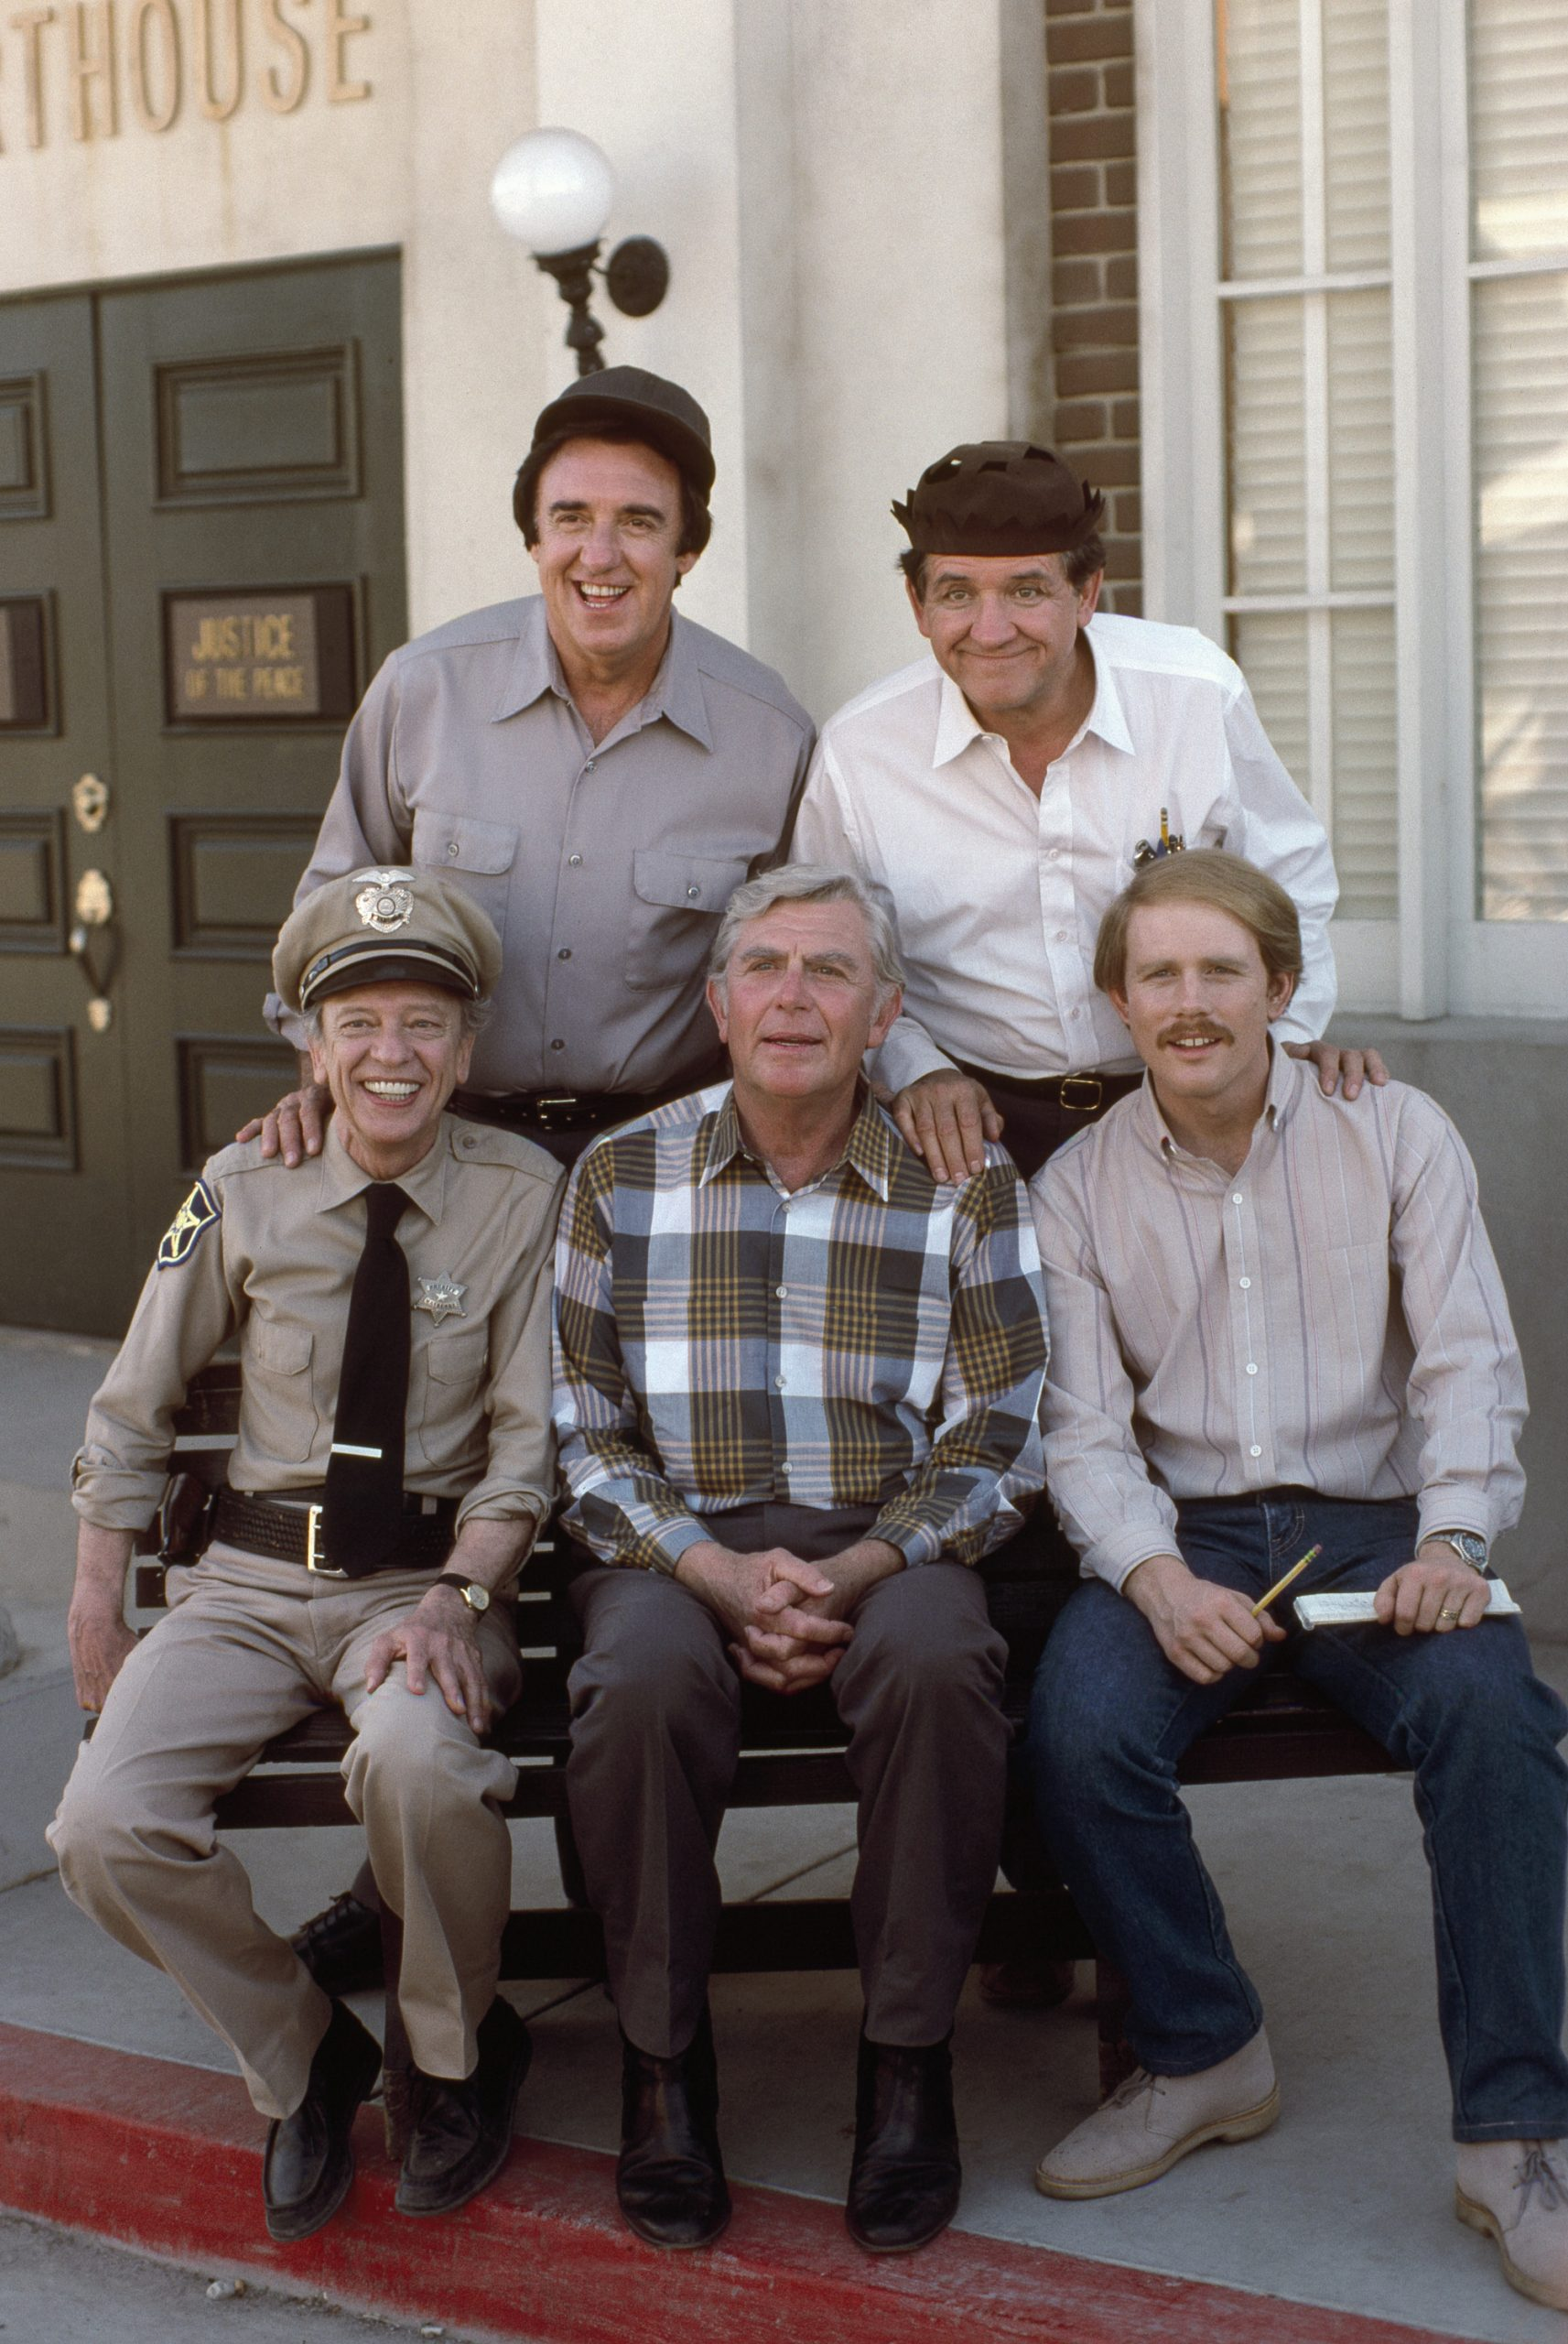 Some of the cast of 1986's TV movie 'Return to Mayberry': (back row l-r) Jim Nabors as Gomer Pyle, George Lindsey as Goober Pyle (front row l-r) Don Knotts as Barney Fife, Andy Griffith as Andy Taylor, and Ron Howard as Opie Taylor